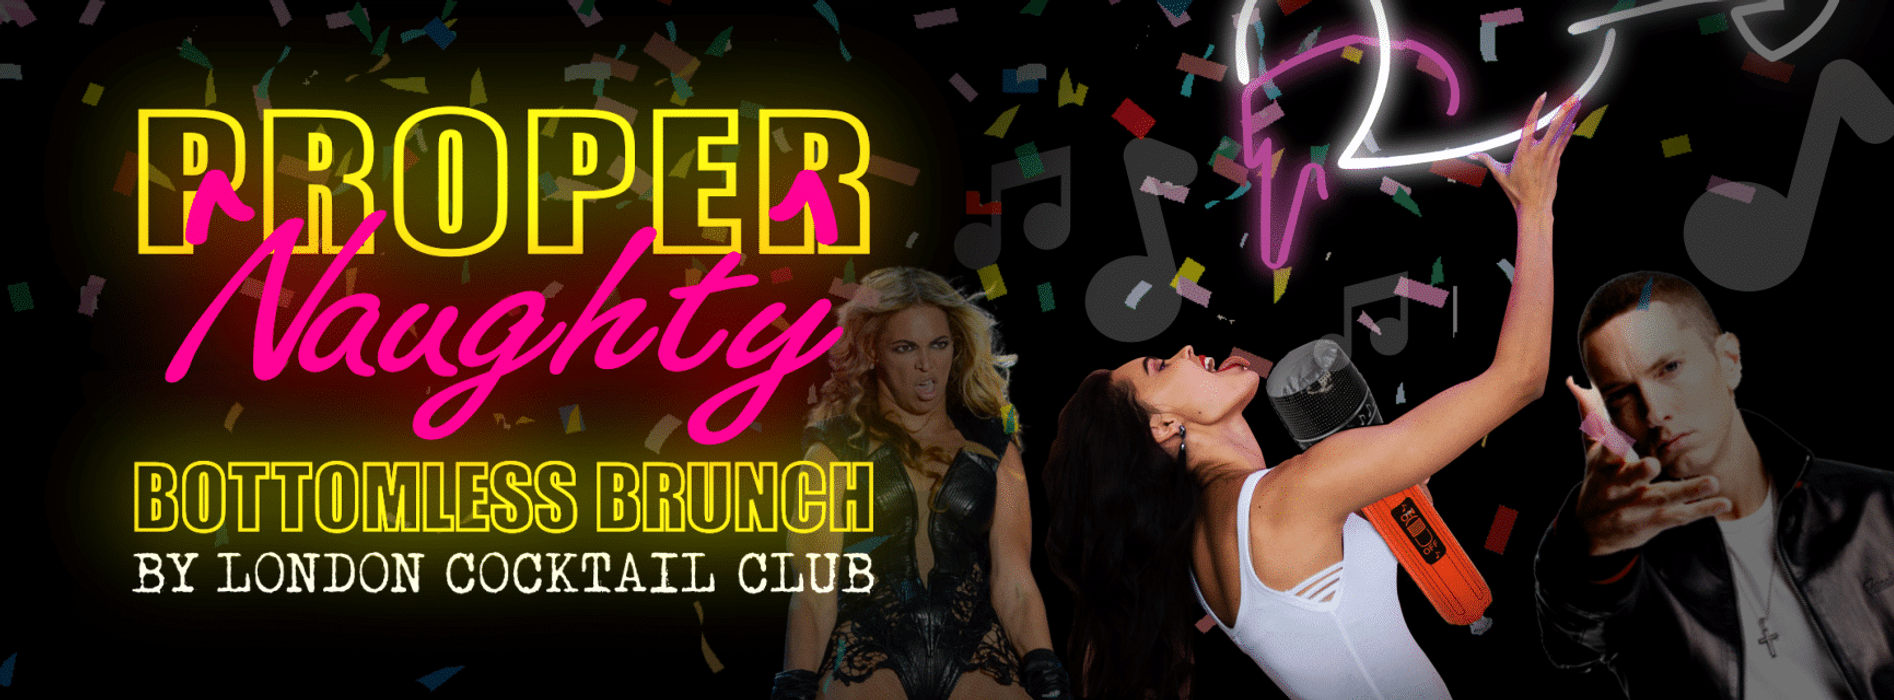 PROPER NAUGHTY BOTTOMLESS BRUNCH's event image